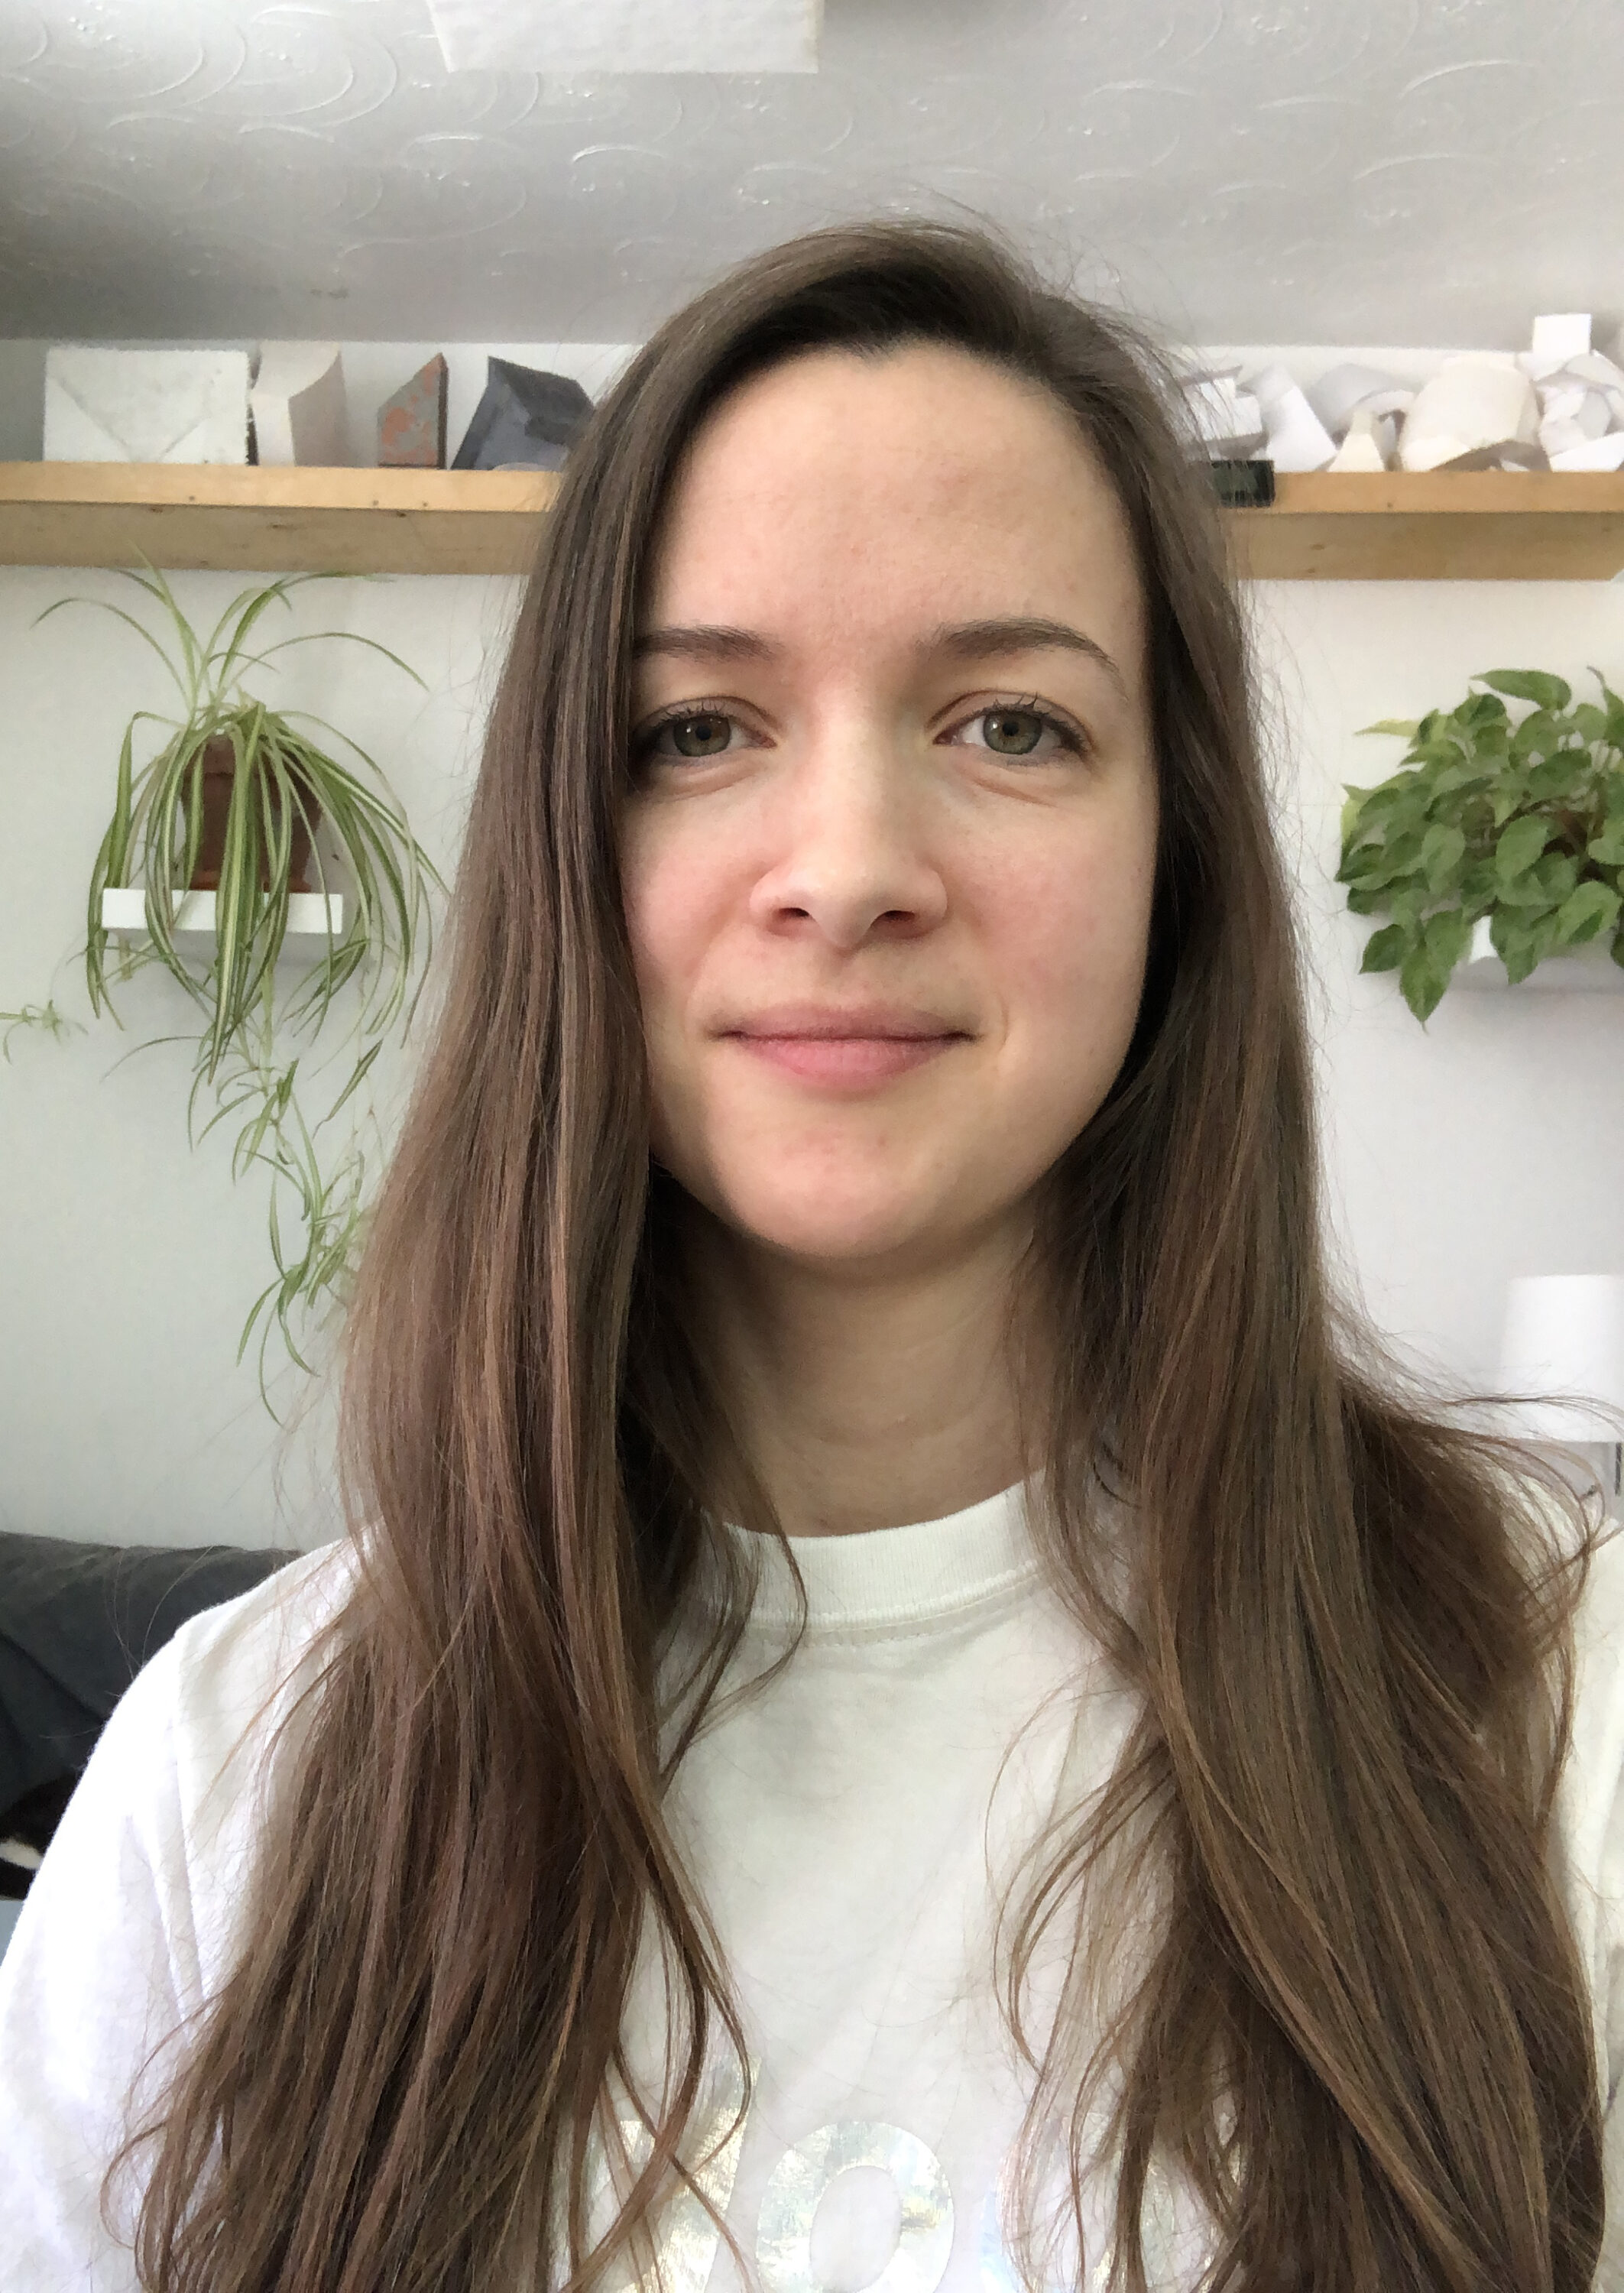 A light-skinned woman with long straight brown hair smiles at the camera. In the background two lush plants are on shelves. The rest of the room is white.